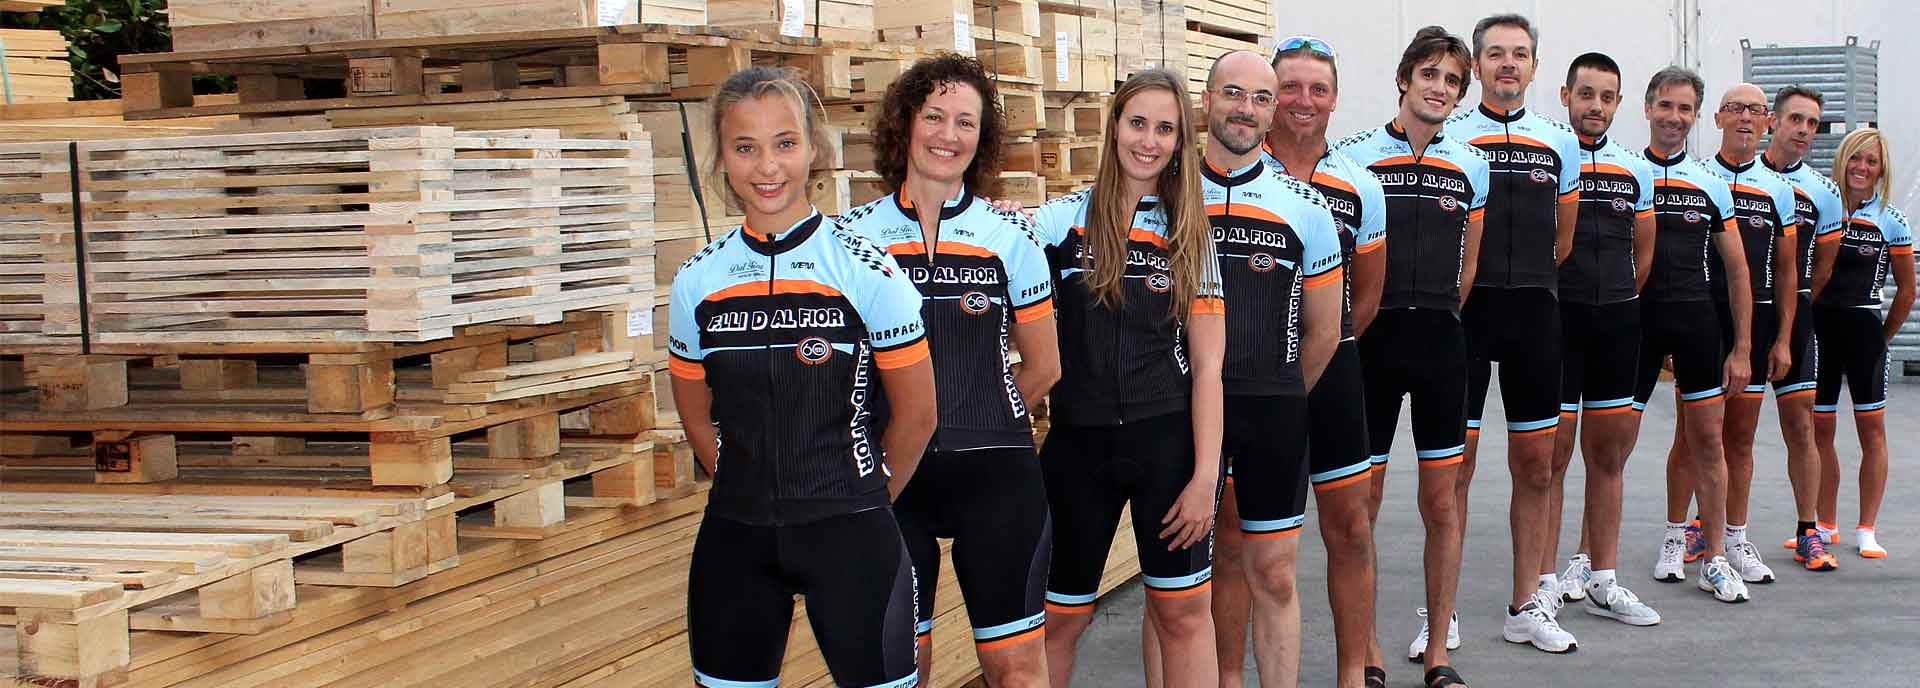 Uniforms for cycling for the sixtieth anniversary Dal Fior